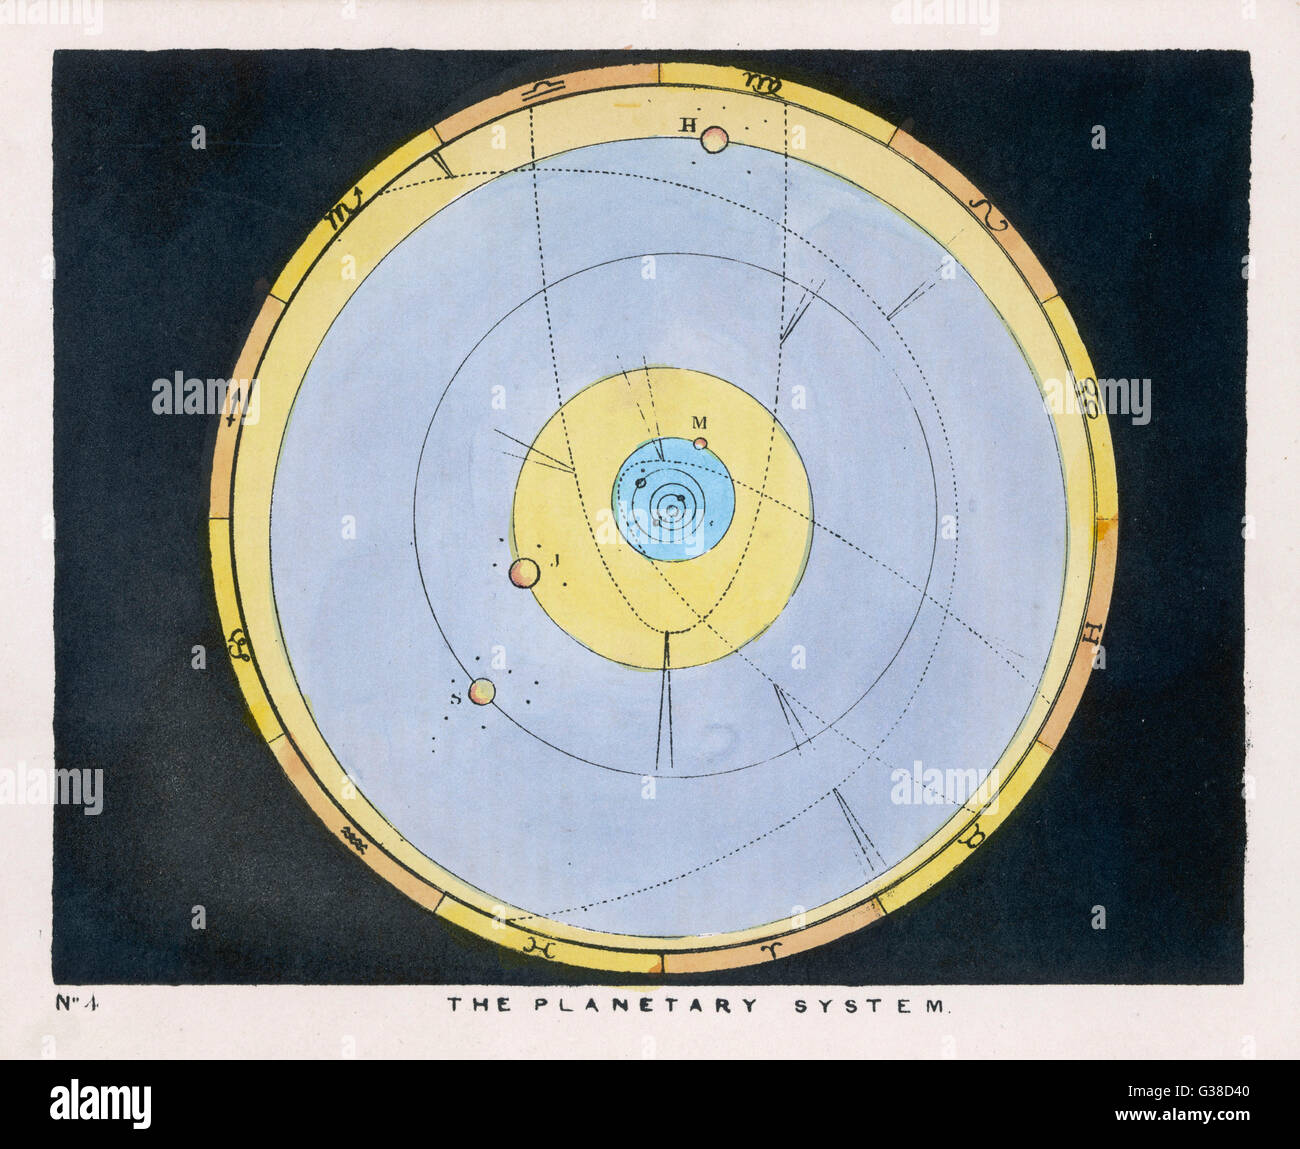 The planetary system.         Date: 1849 - Stock Image